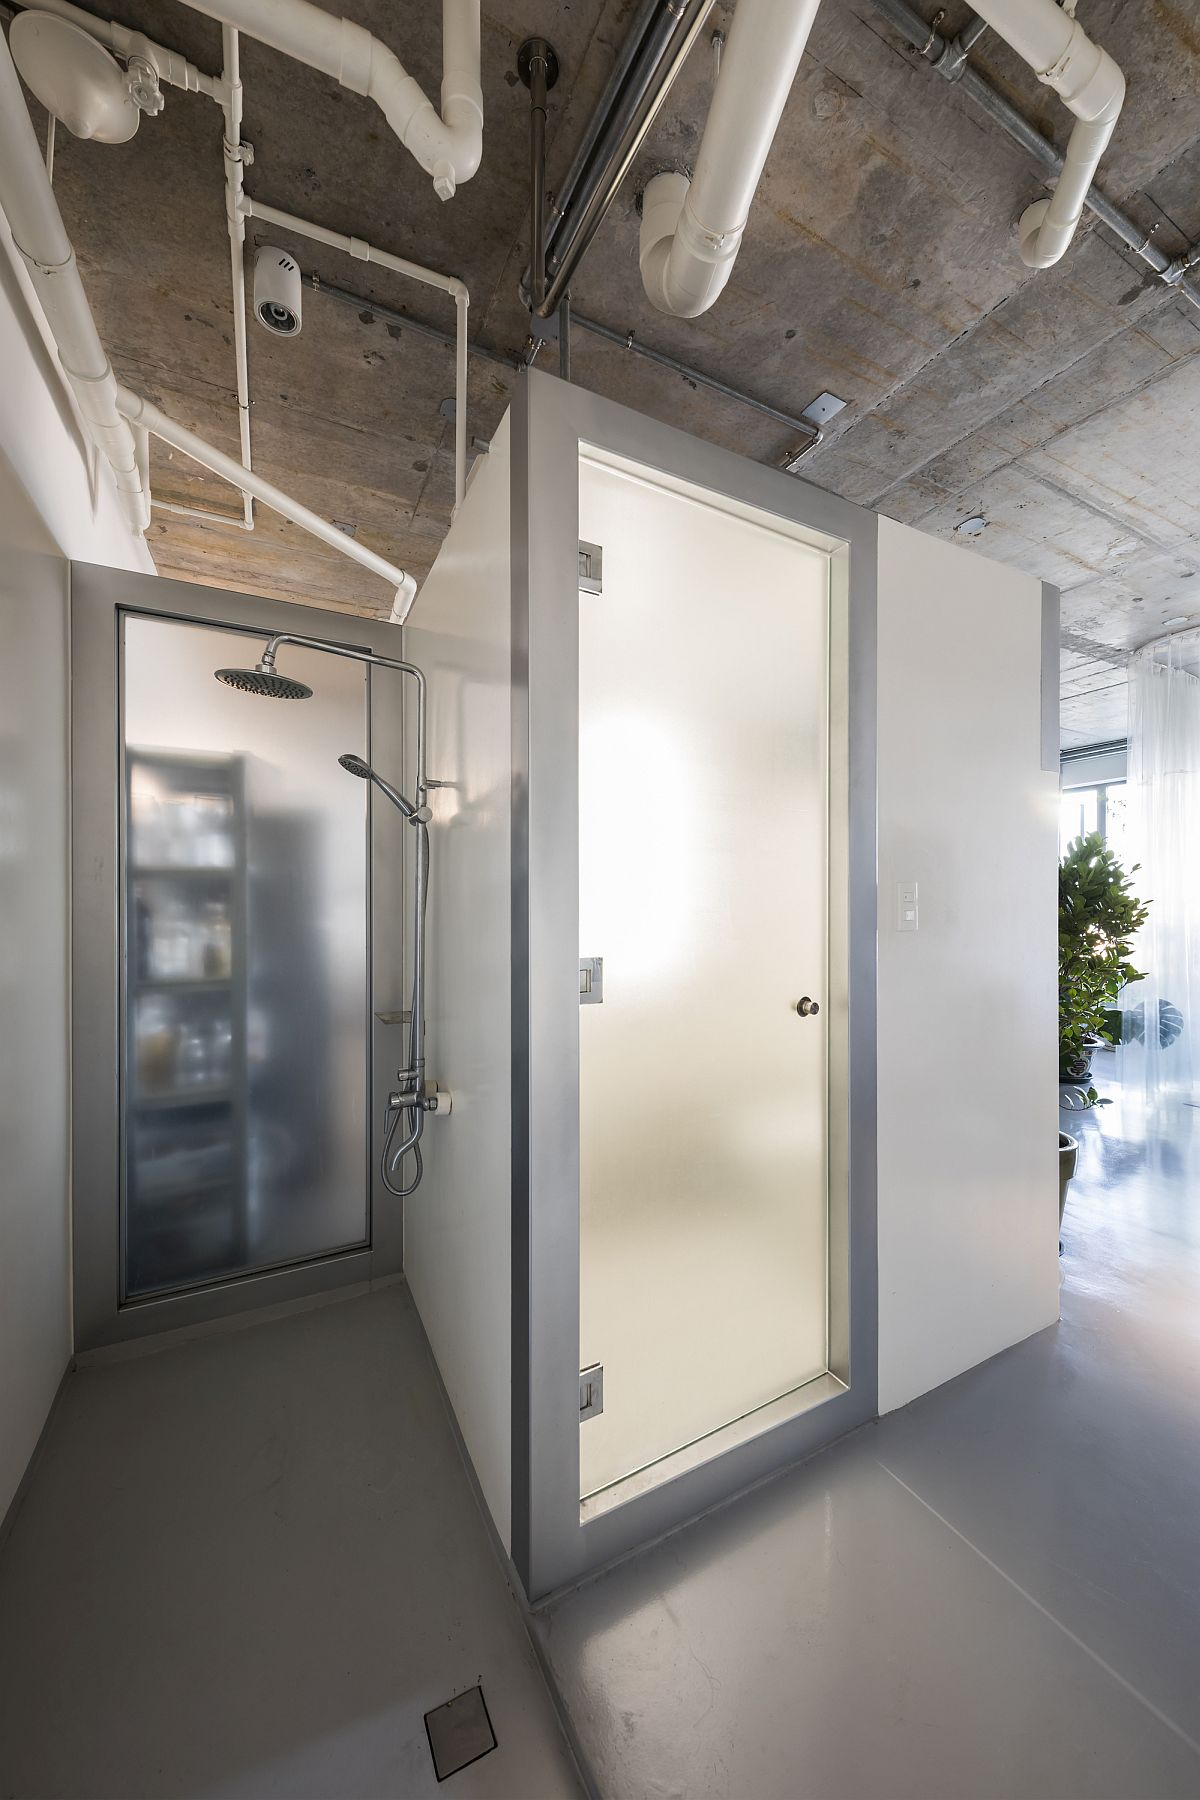 Frosted glass doors inside the apartment combine privacy with proper ventilation